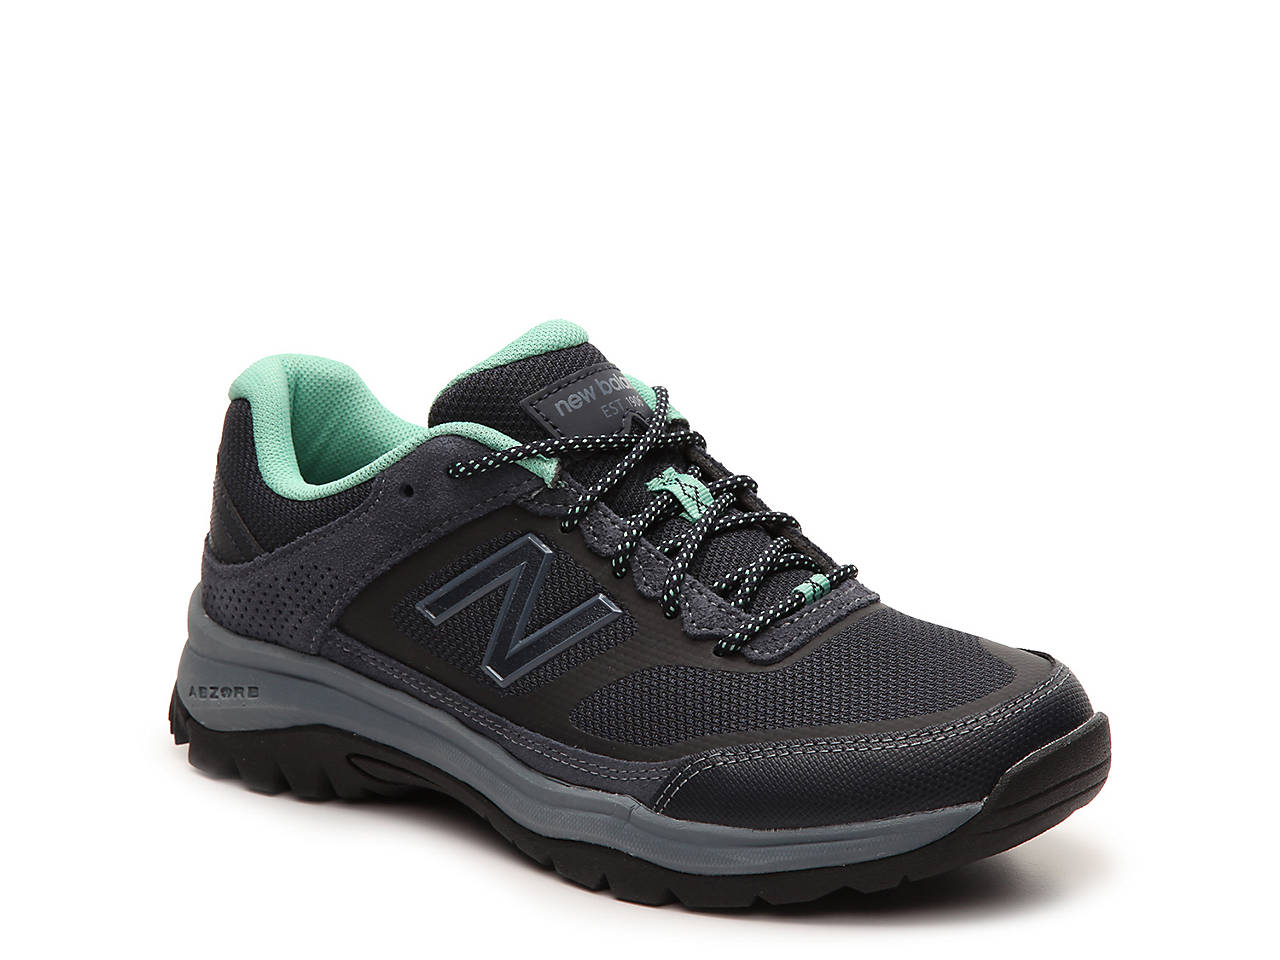 New Balance 669 Trail Walking Shoe - Women s Women s Shoes  d53eaf5af